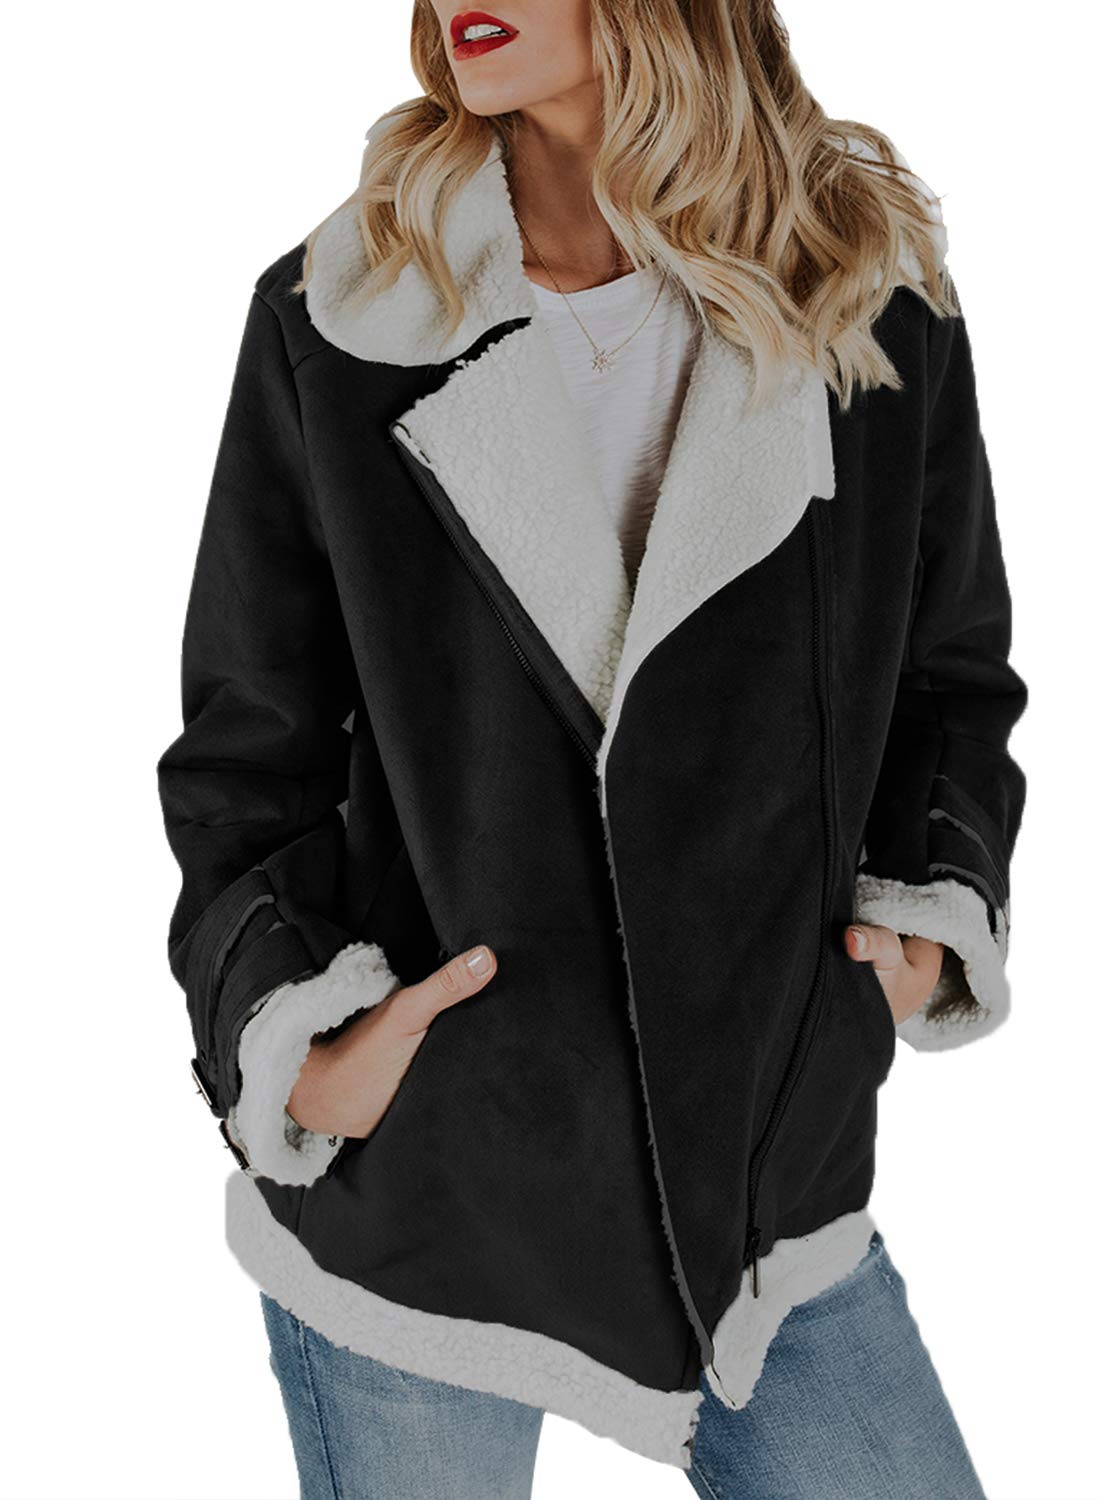 Sidefeel Women Faux Suede Jacket Zipper Up Front Coat Outwear with Pockets X-Large Black